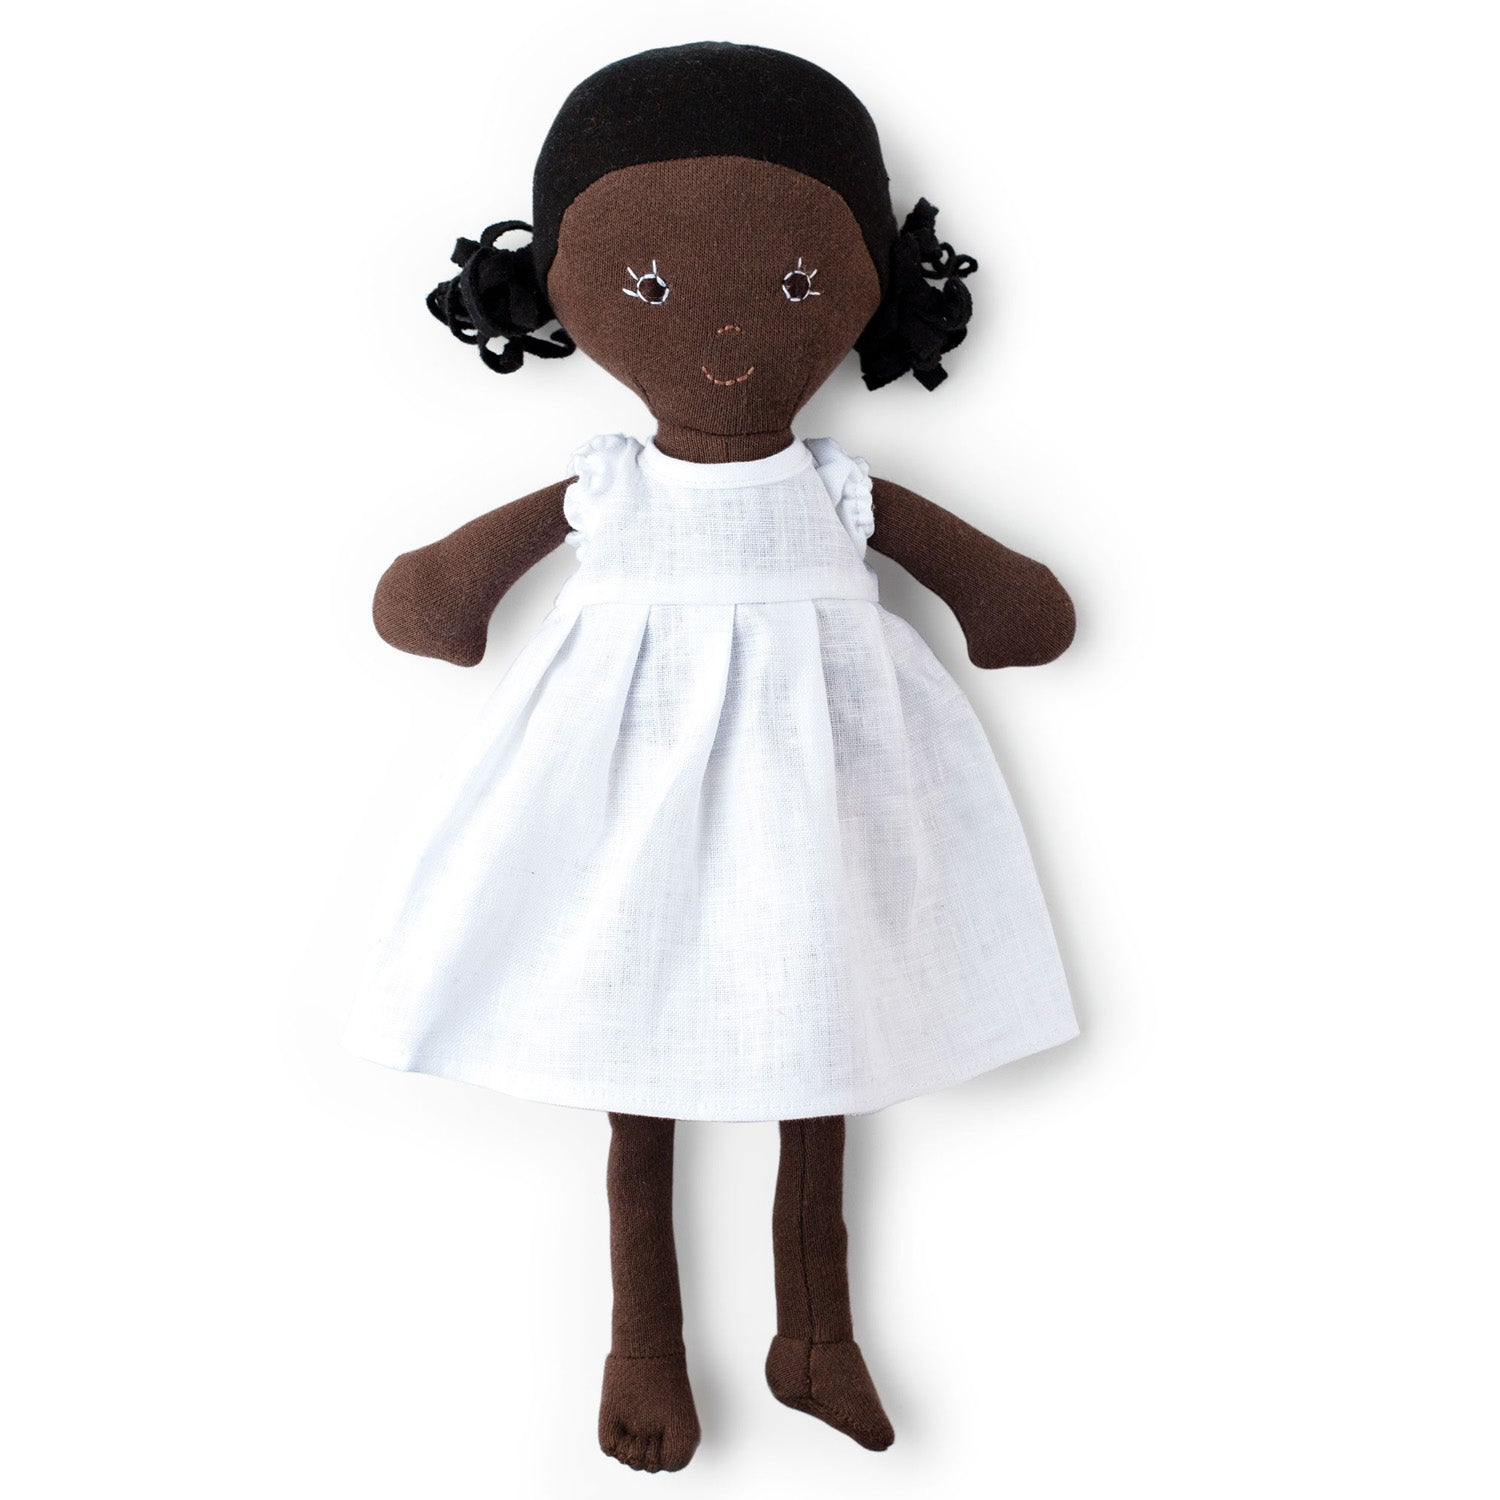 Hazel Village Organic Ada Doll in Snowy White Linen Dress